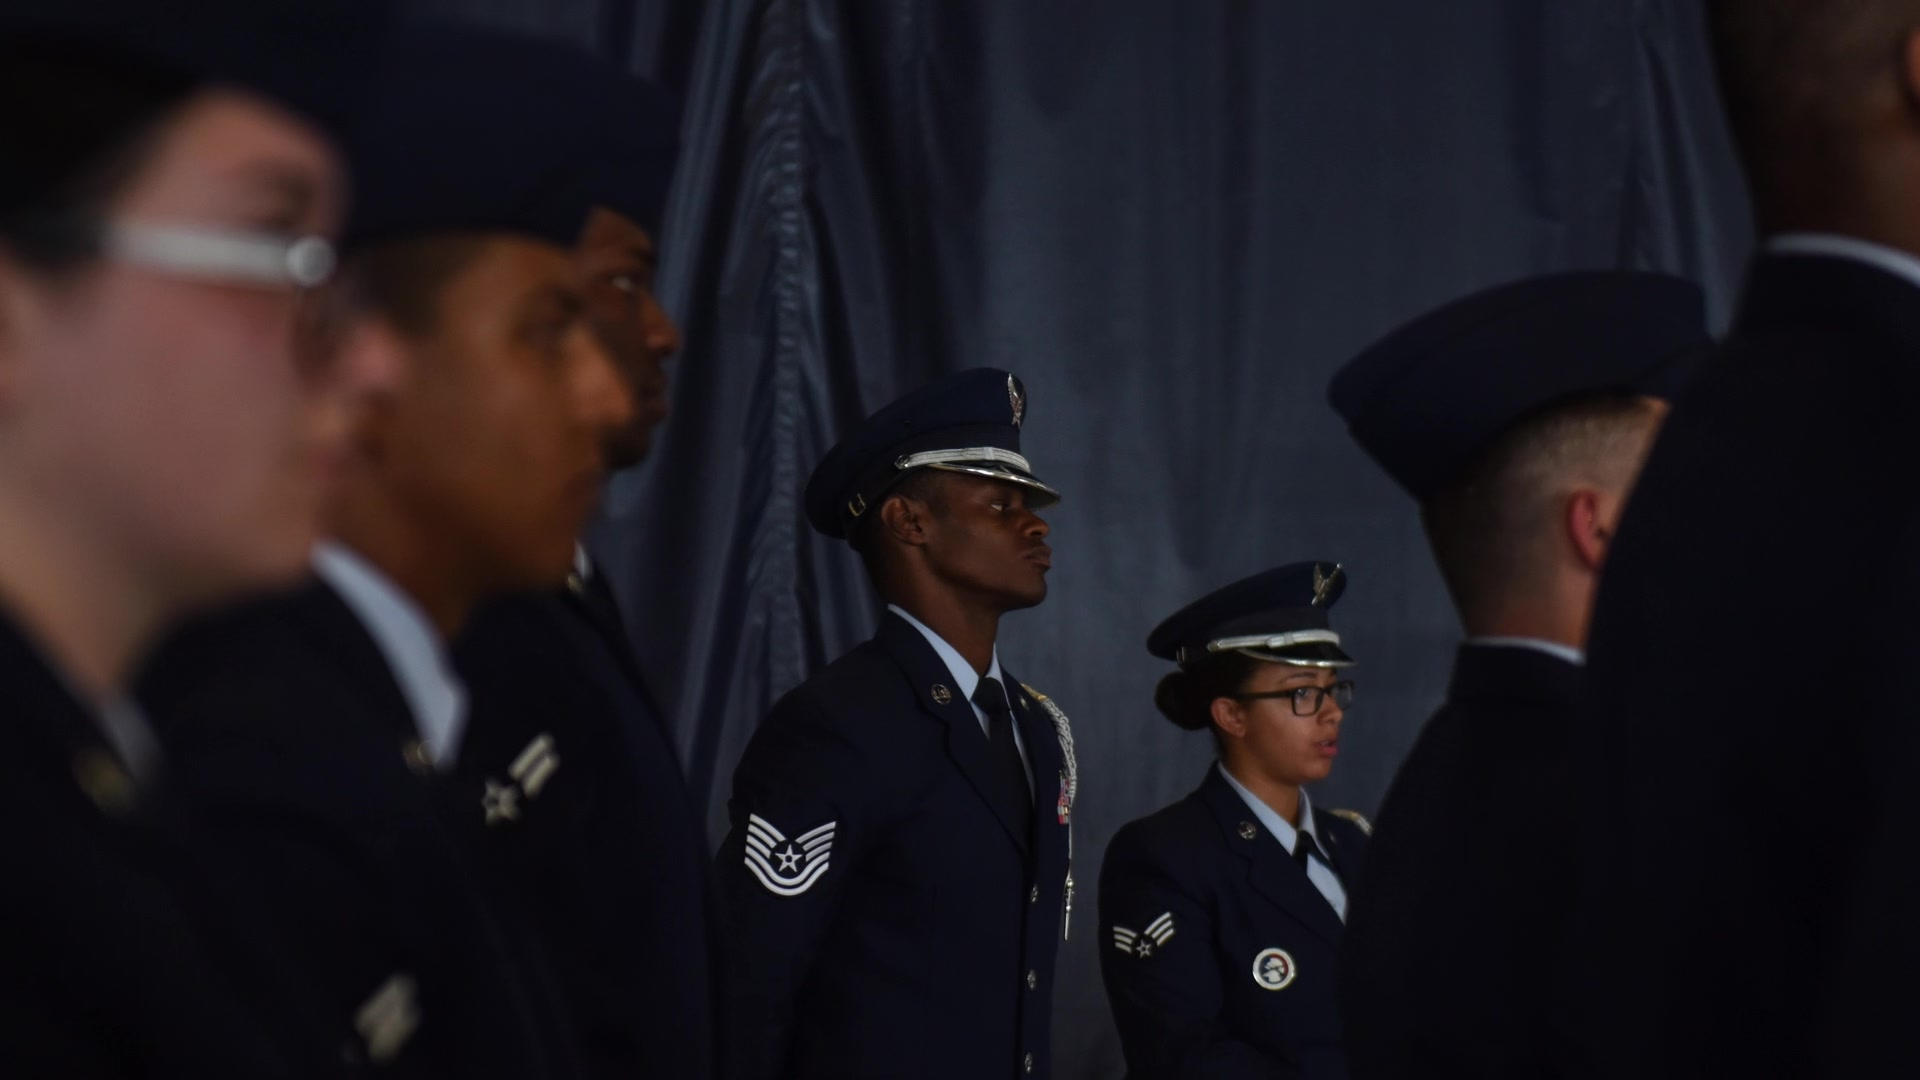 Video on efforts applied prior to an honor guard detail.